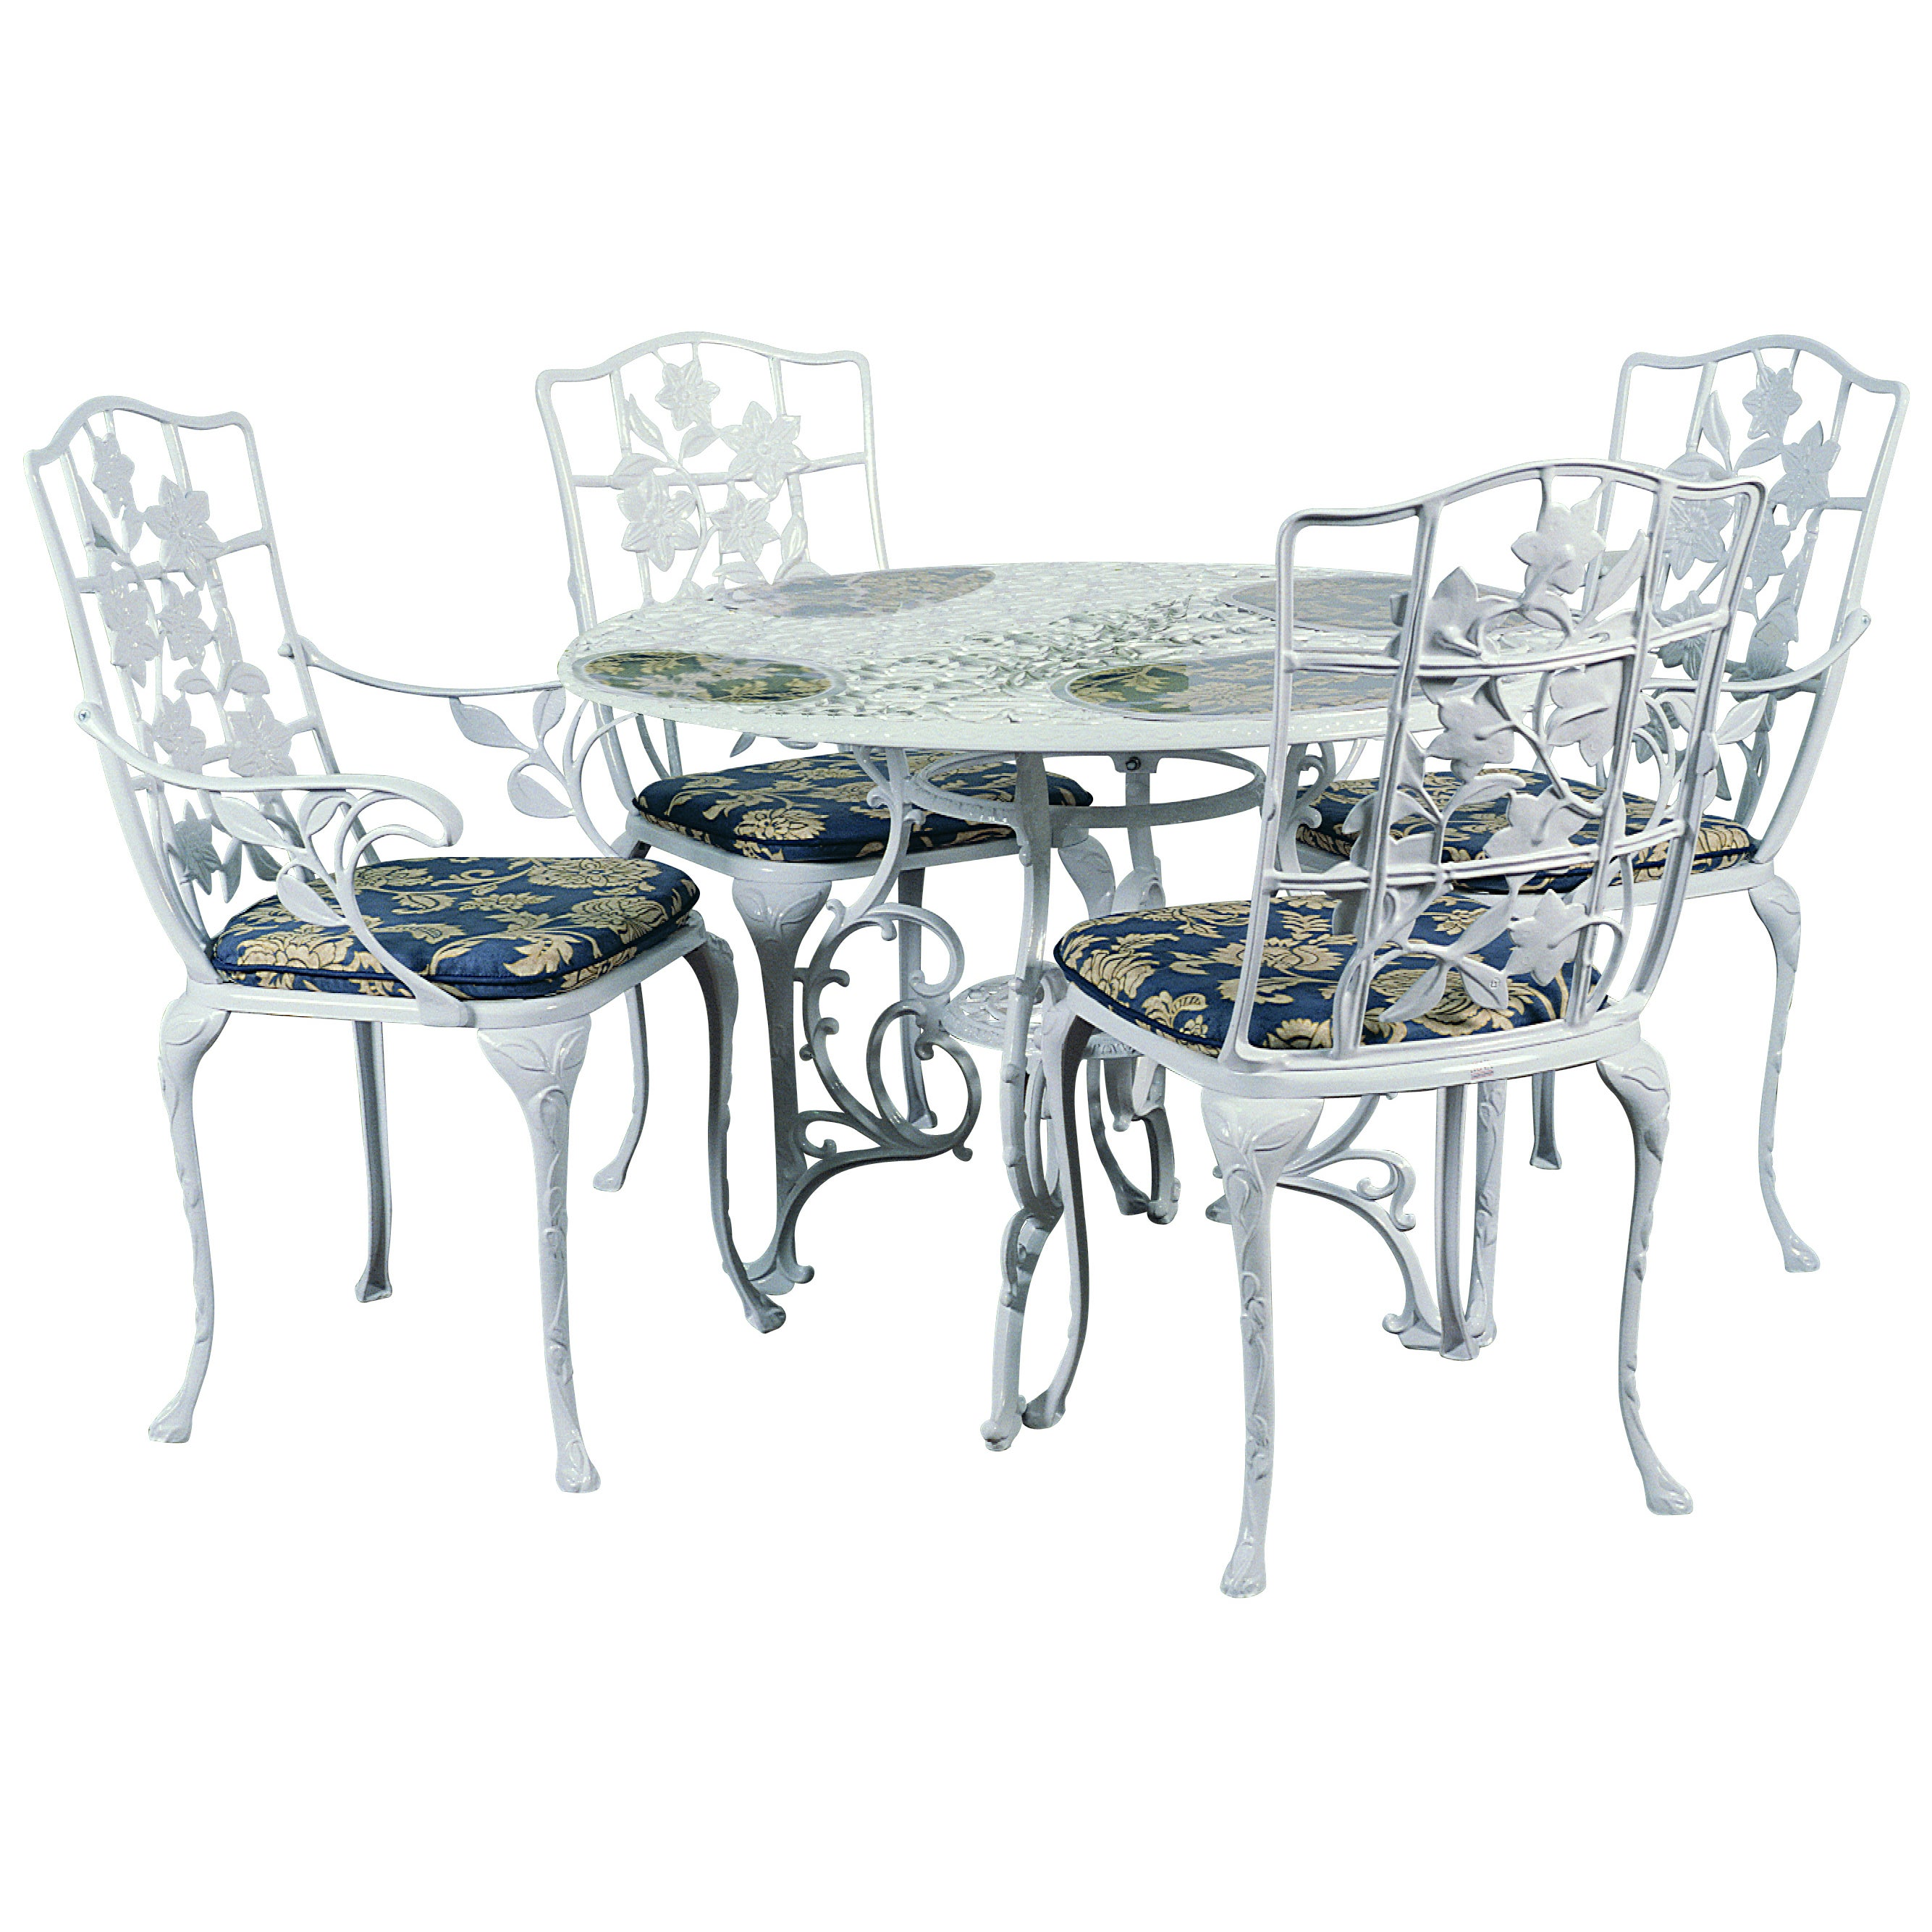 Shop Bosmere Deluxe Weatherproof 84 Inch Tall Round Cafe Patio Set